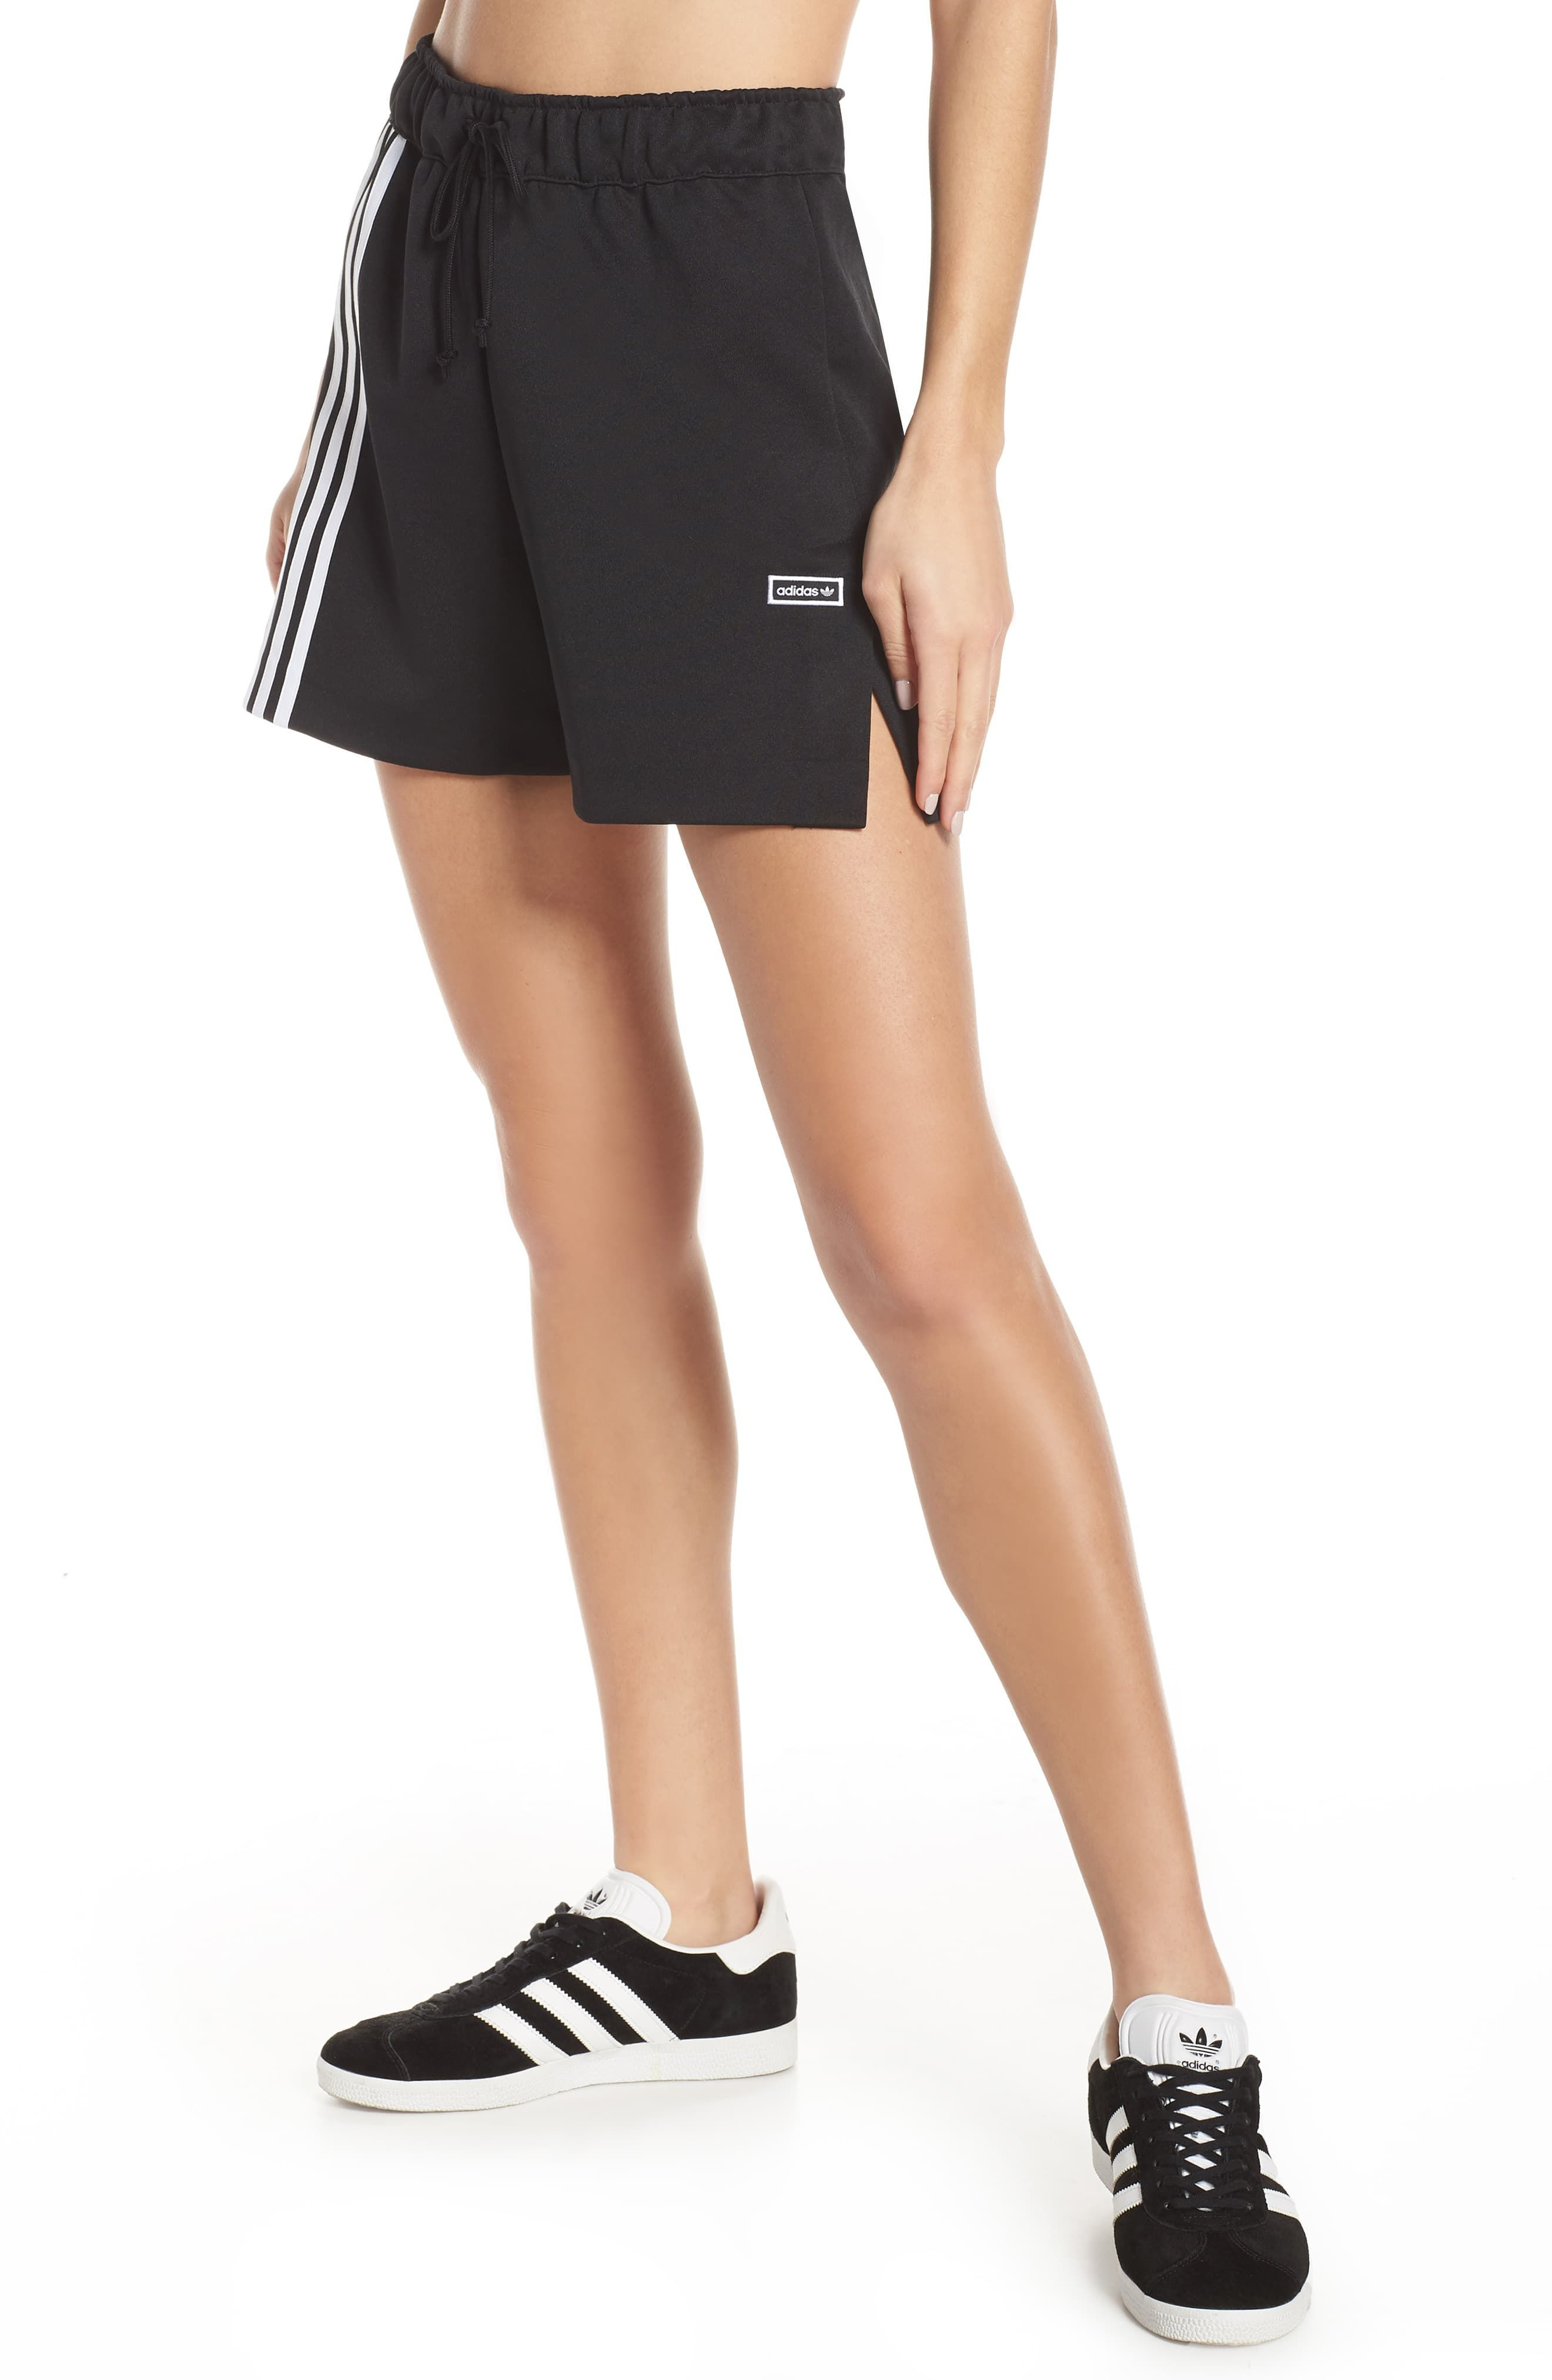 adidas Orignals 3 Stripes Athletic Shorts | Athletic shorts